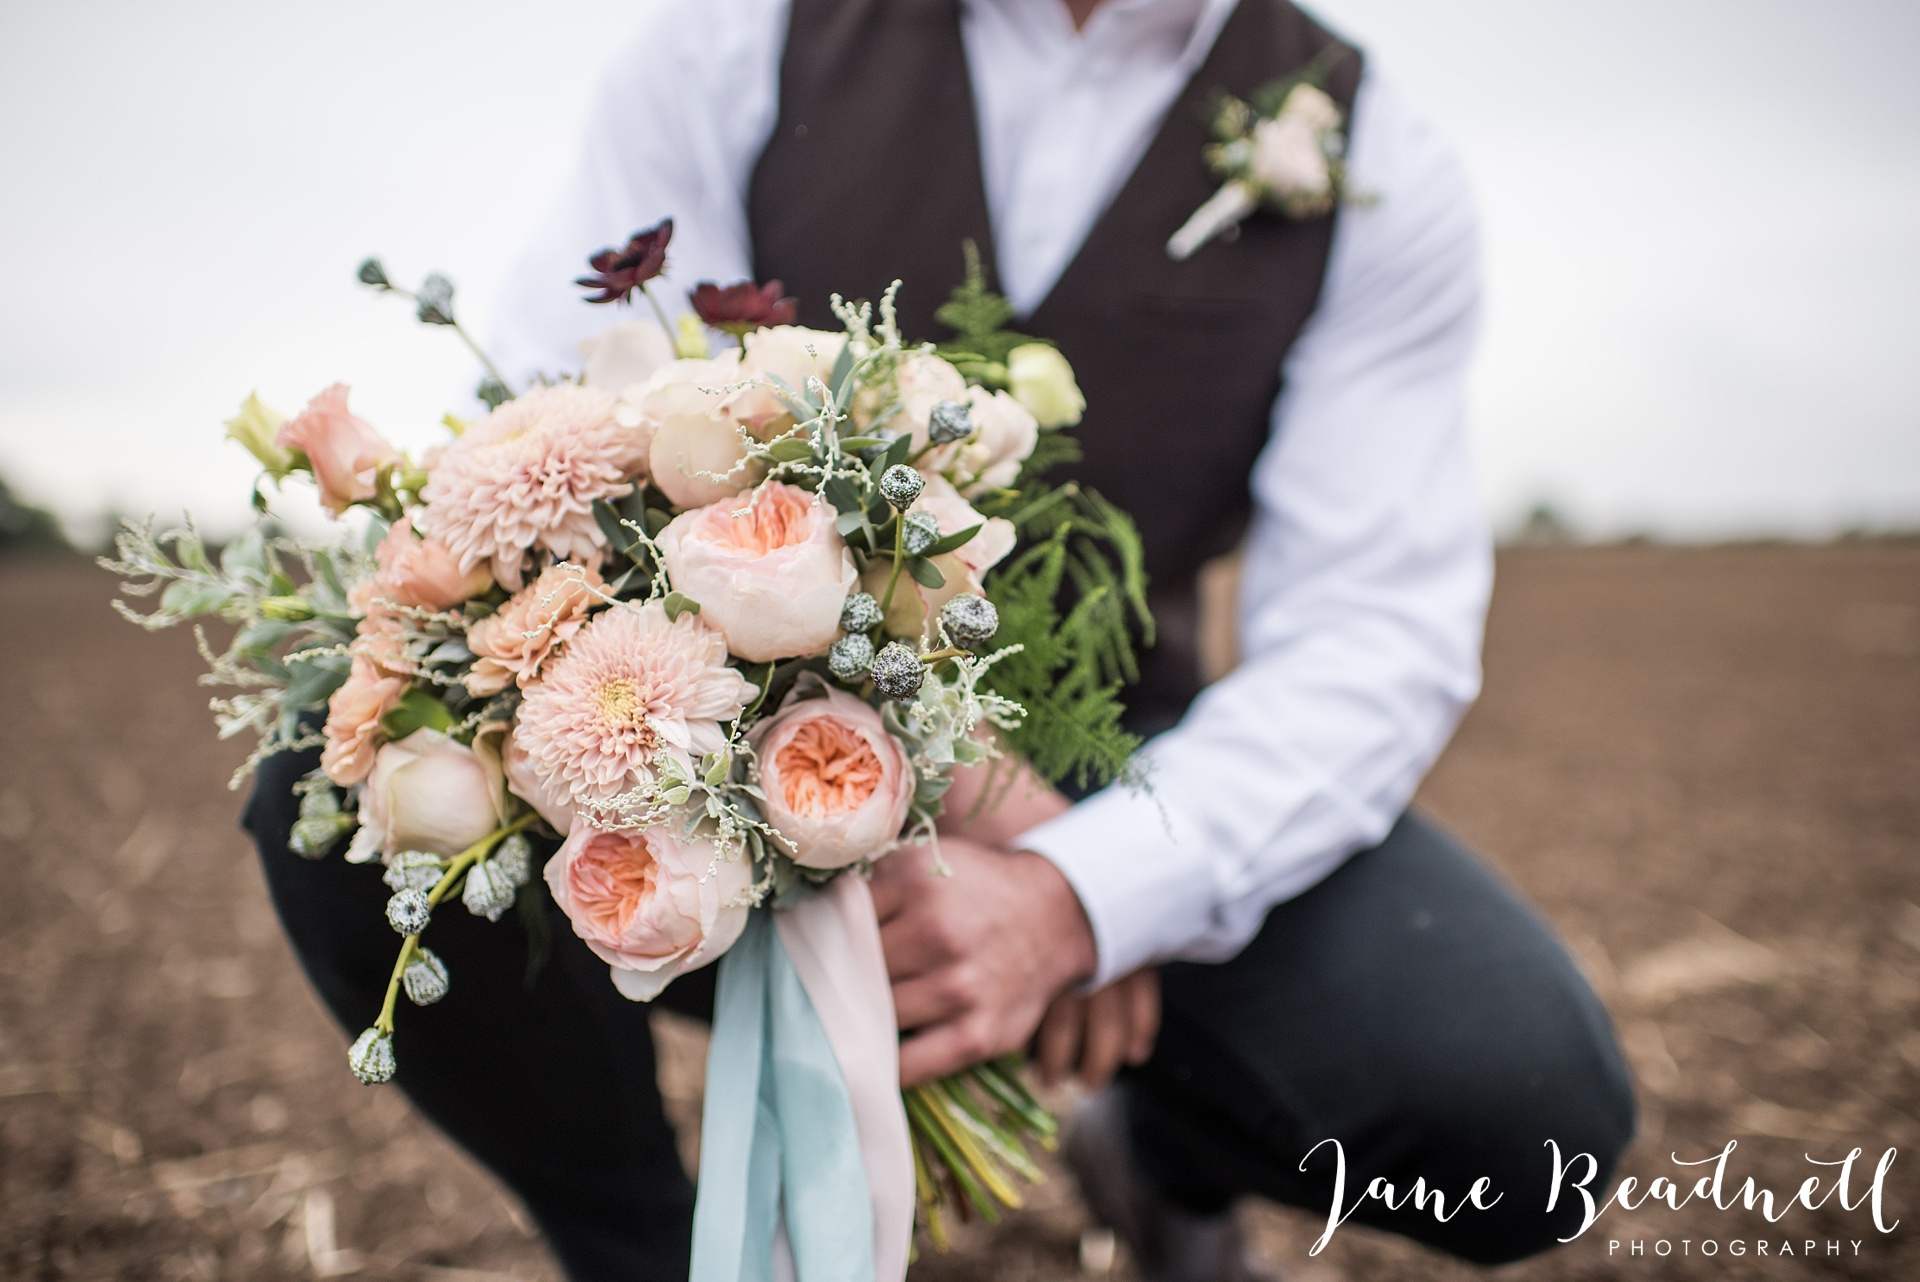 fine-art-wedding-photographer-jane-beadnell-photography-yorkshire-wedding-photographer_0012